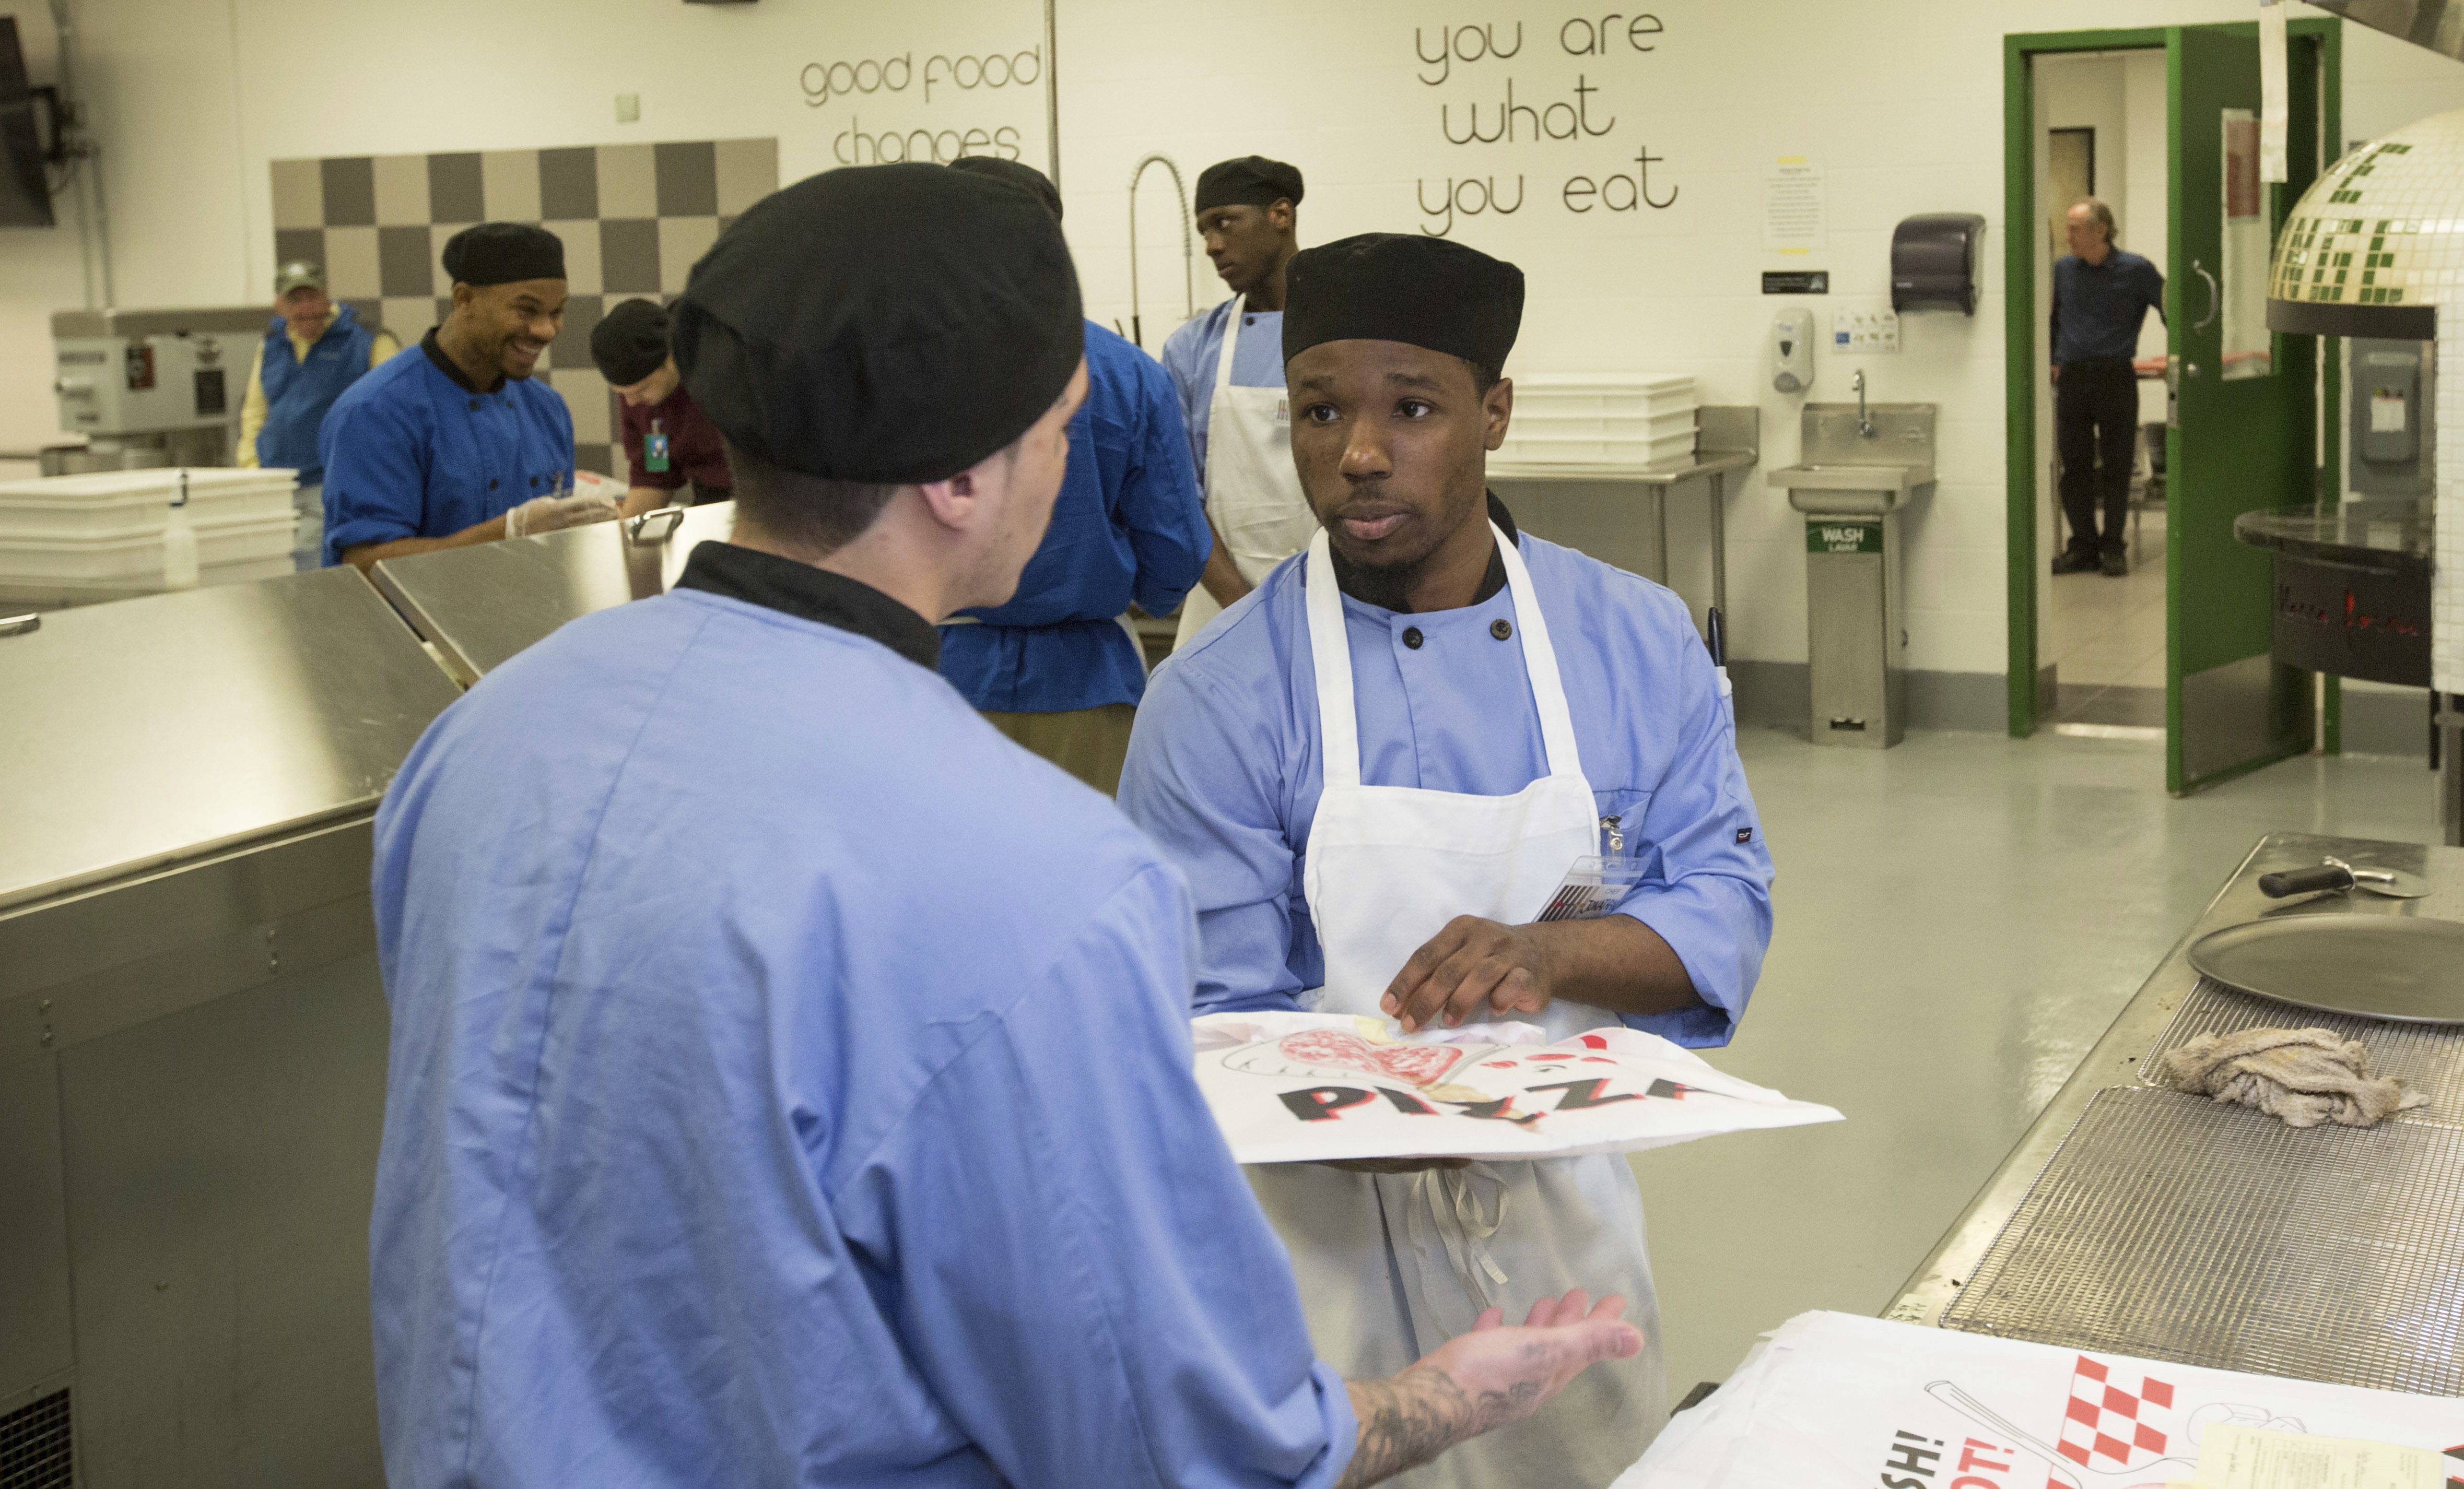 Inmate Jonathan Scott, right, works in the kitchen at the Cook County Jail in Chicago. Scott is participating in the jail's 'Recipe for Change' program while he waits for trial after his 2015 arrest on an armed robbery charge. (AP Photo/Teresa Crawford)